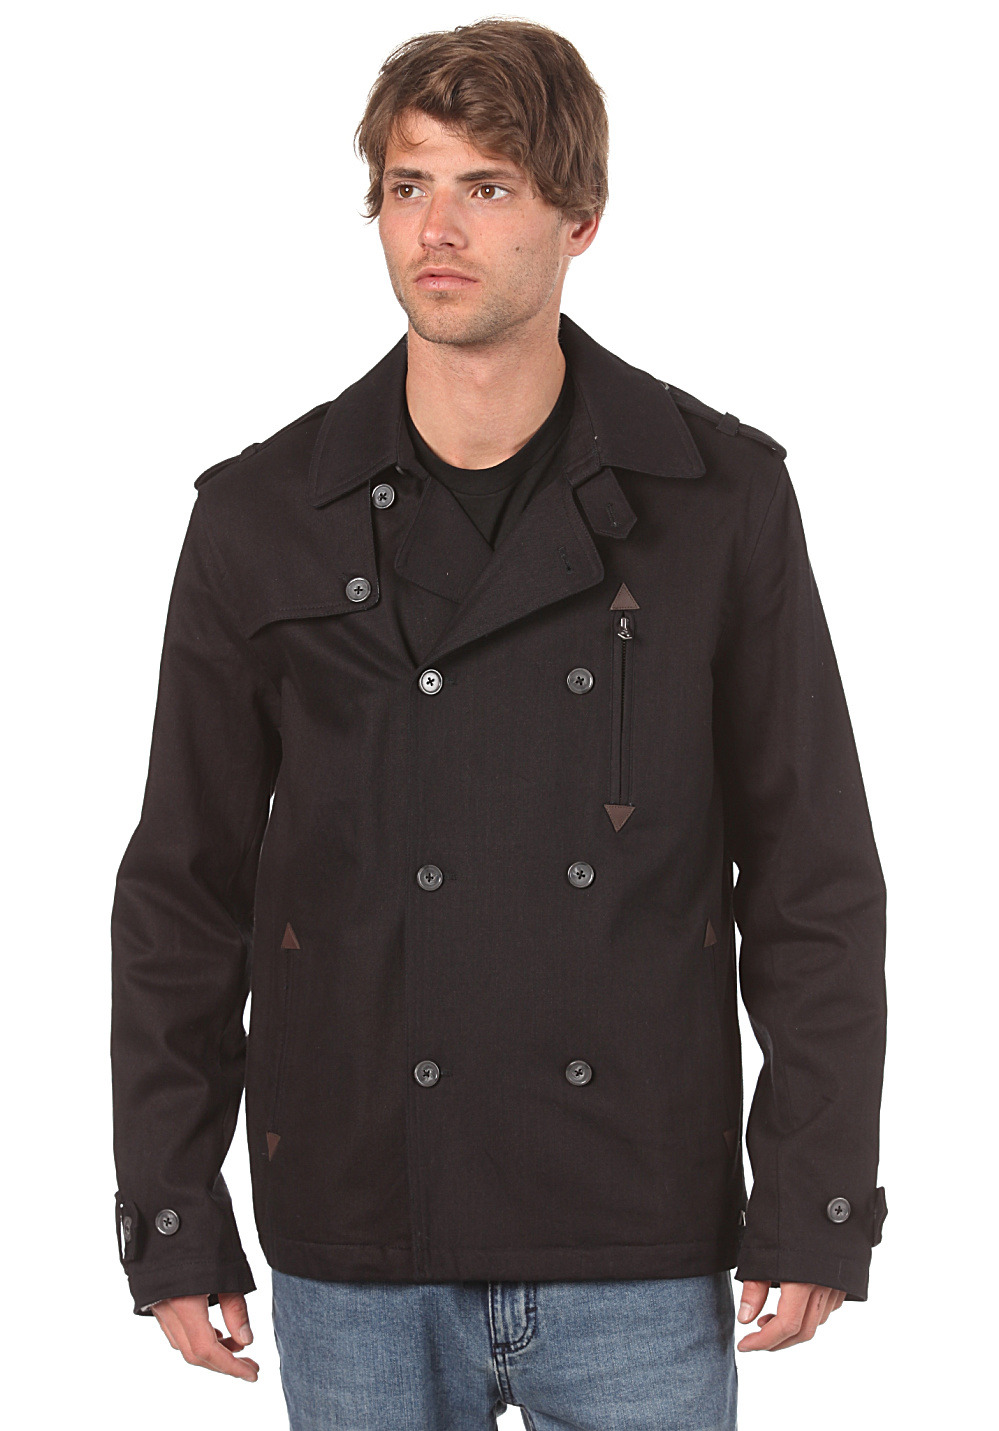 ANALOG Hunter Jacket waxed - Jacket for Men